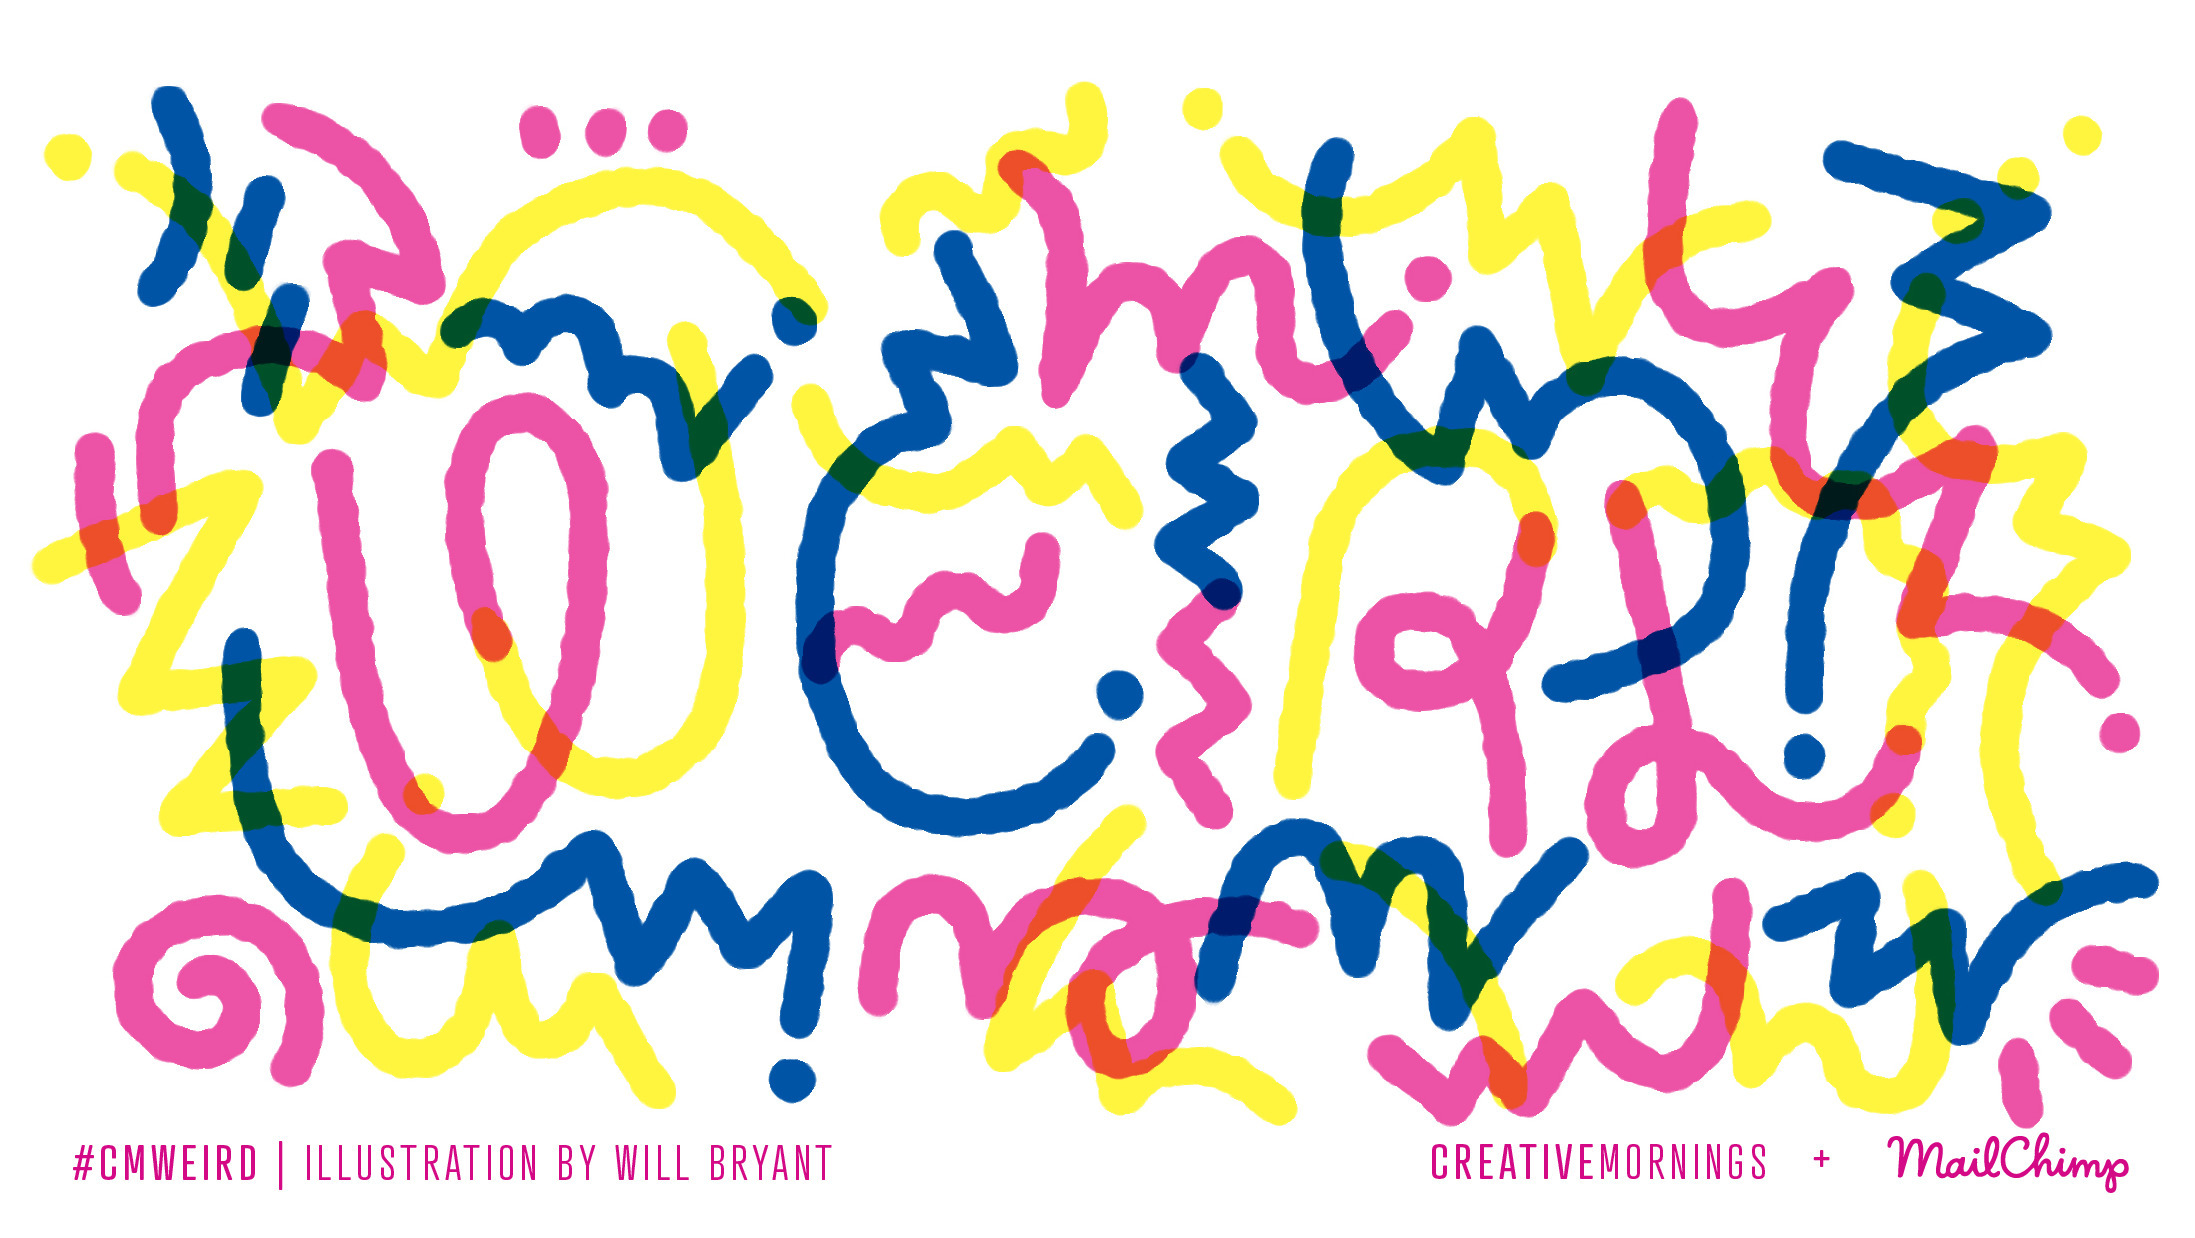 CreativeMornings / Chattanooga (@chattanooga_cm) Cover Image